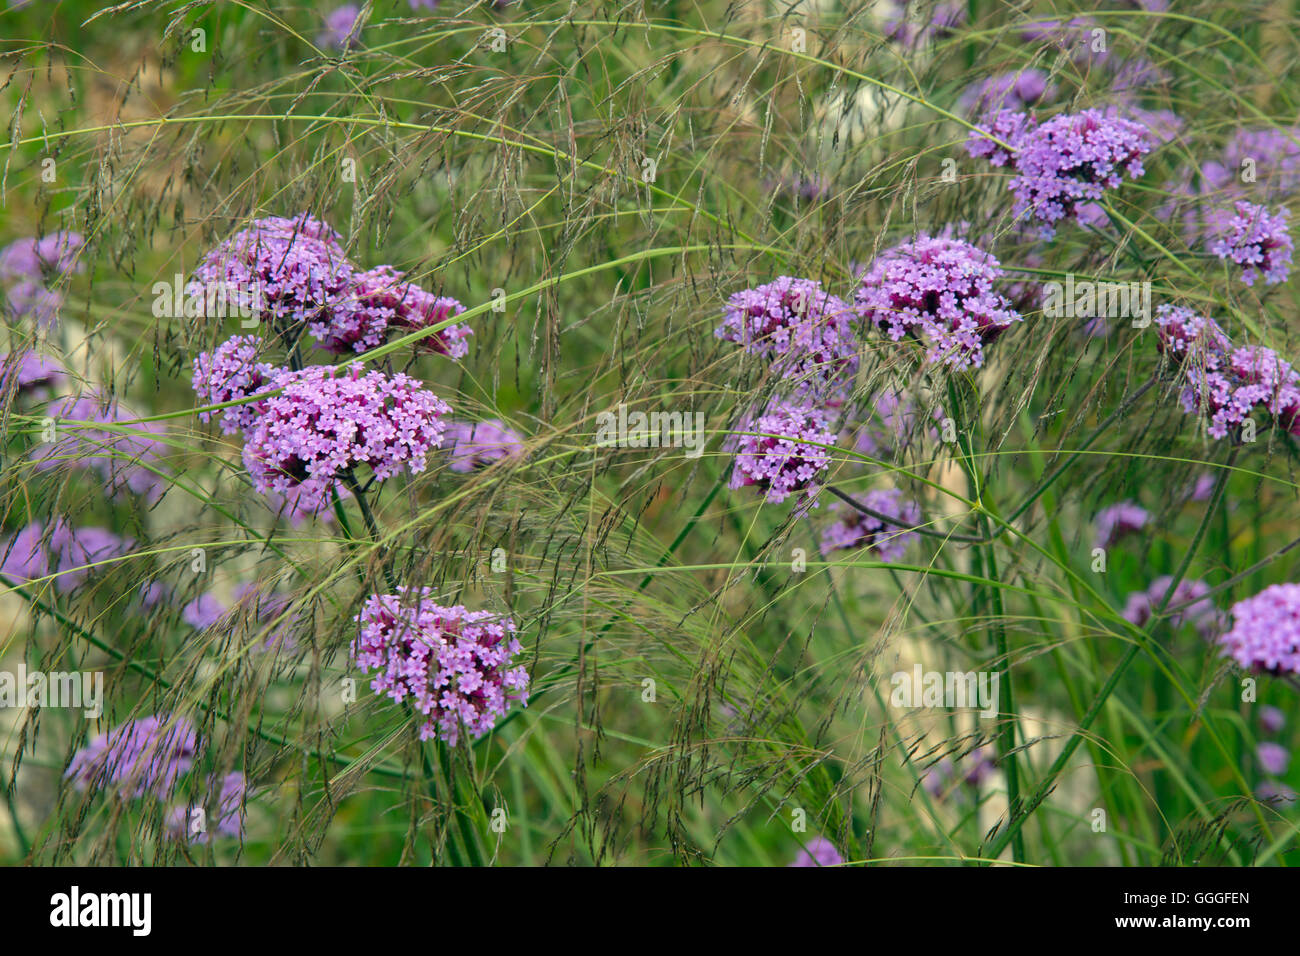 Verbena bonariensis  or Purpletop vervain, Clustertop vervain, Argentinian vervain  native to tropical South America - Stock Image